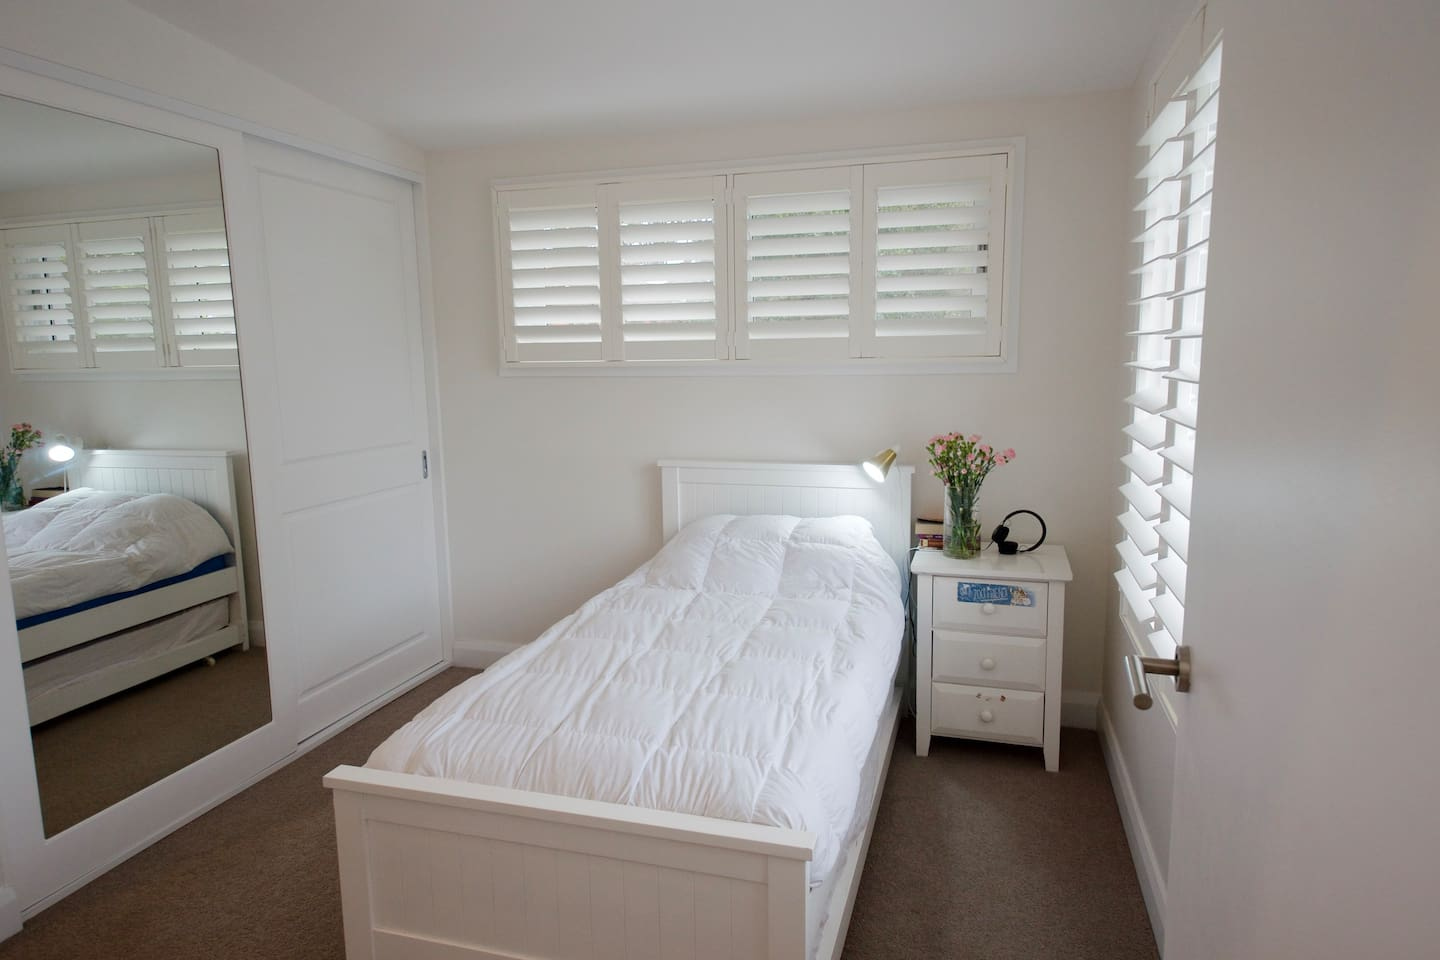 4th bedroom with single bed and trundle bed